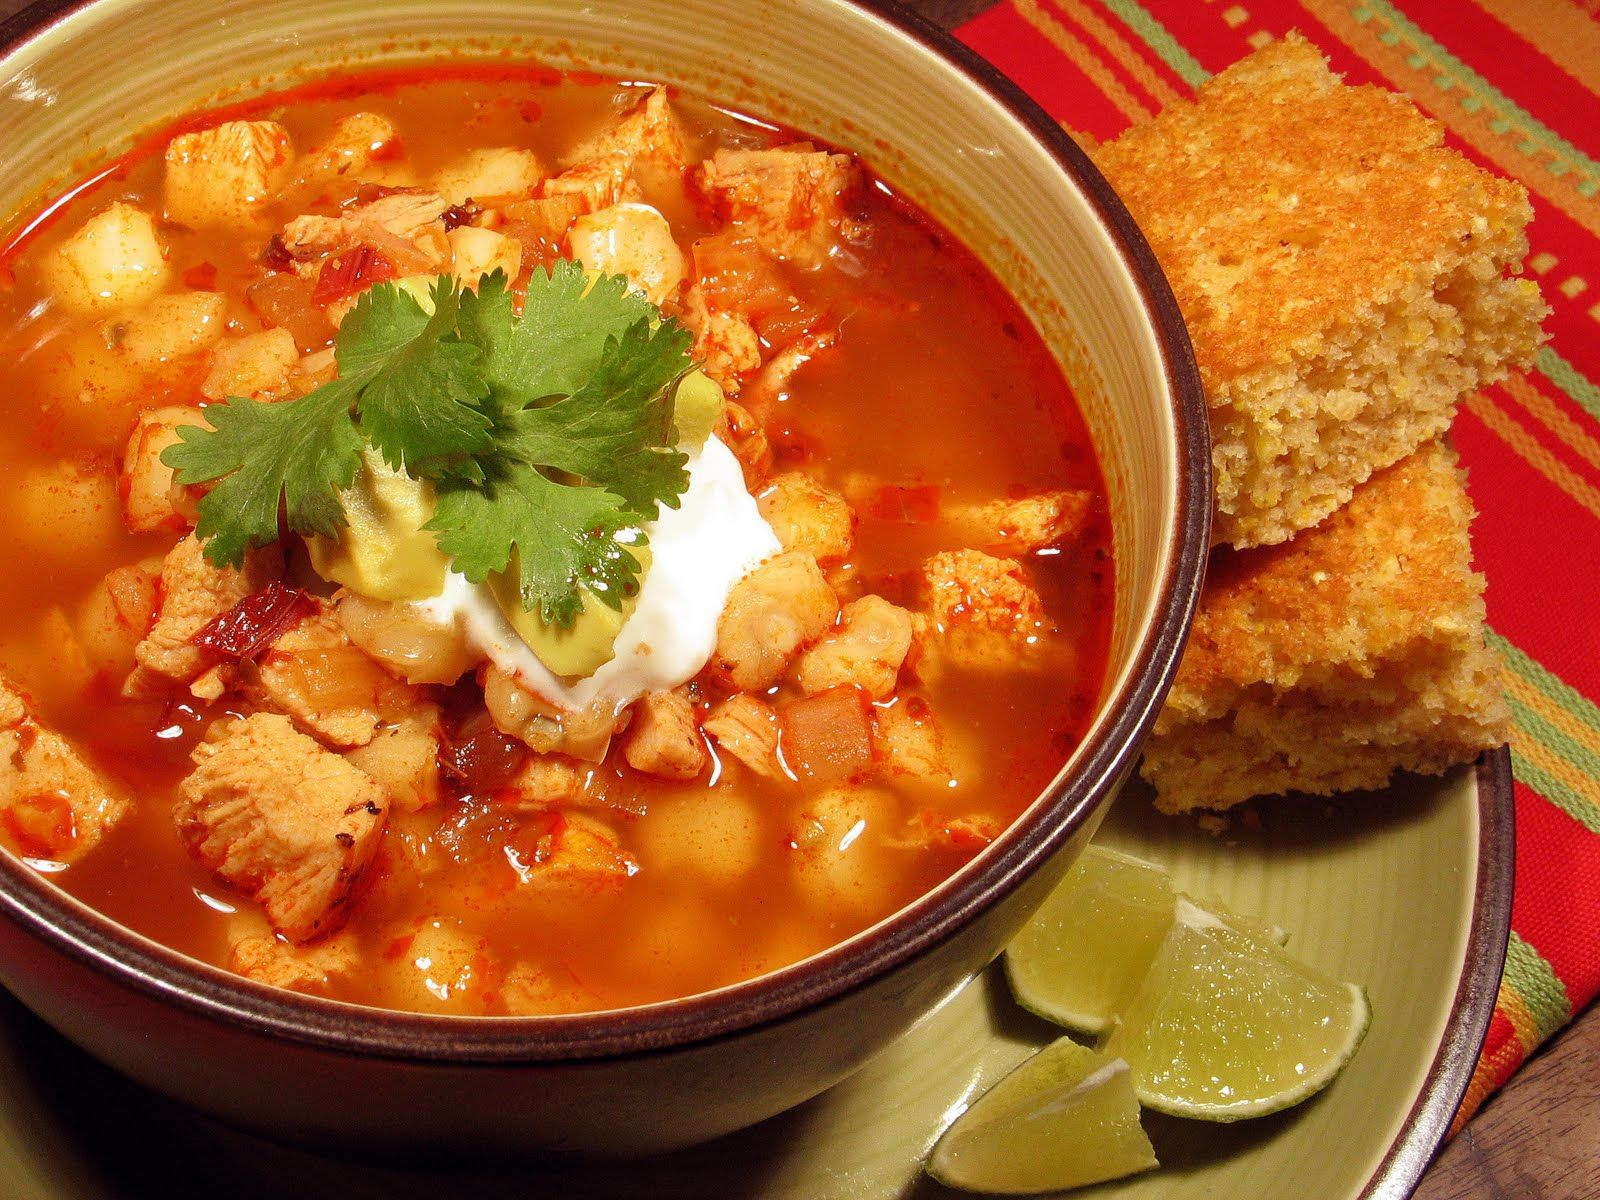 Posole is a traditional Mexican dish from the pacific